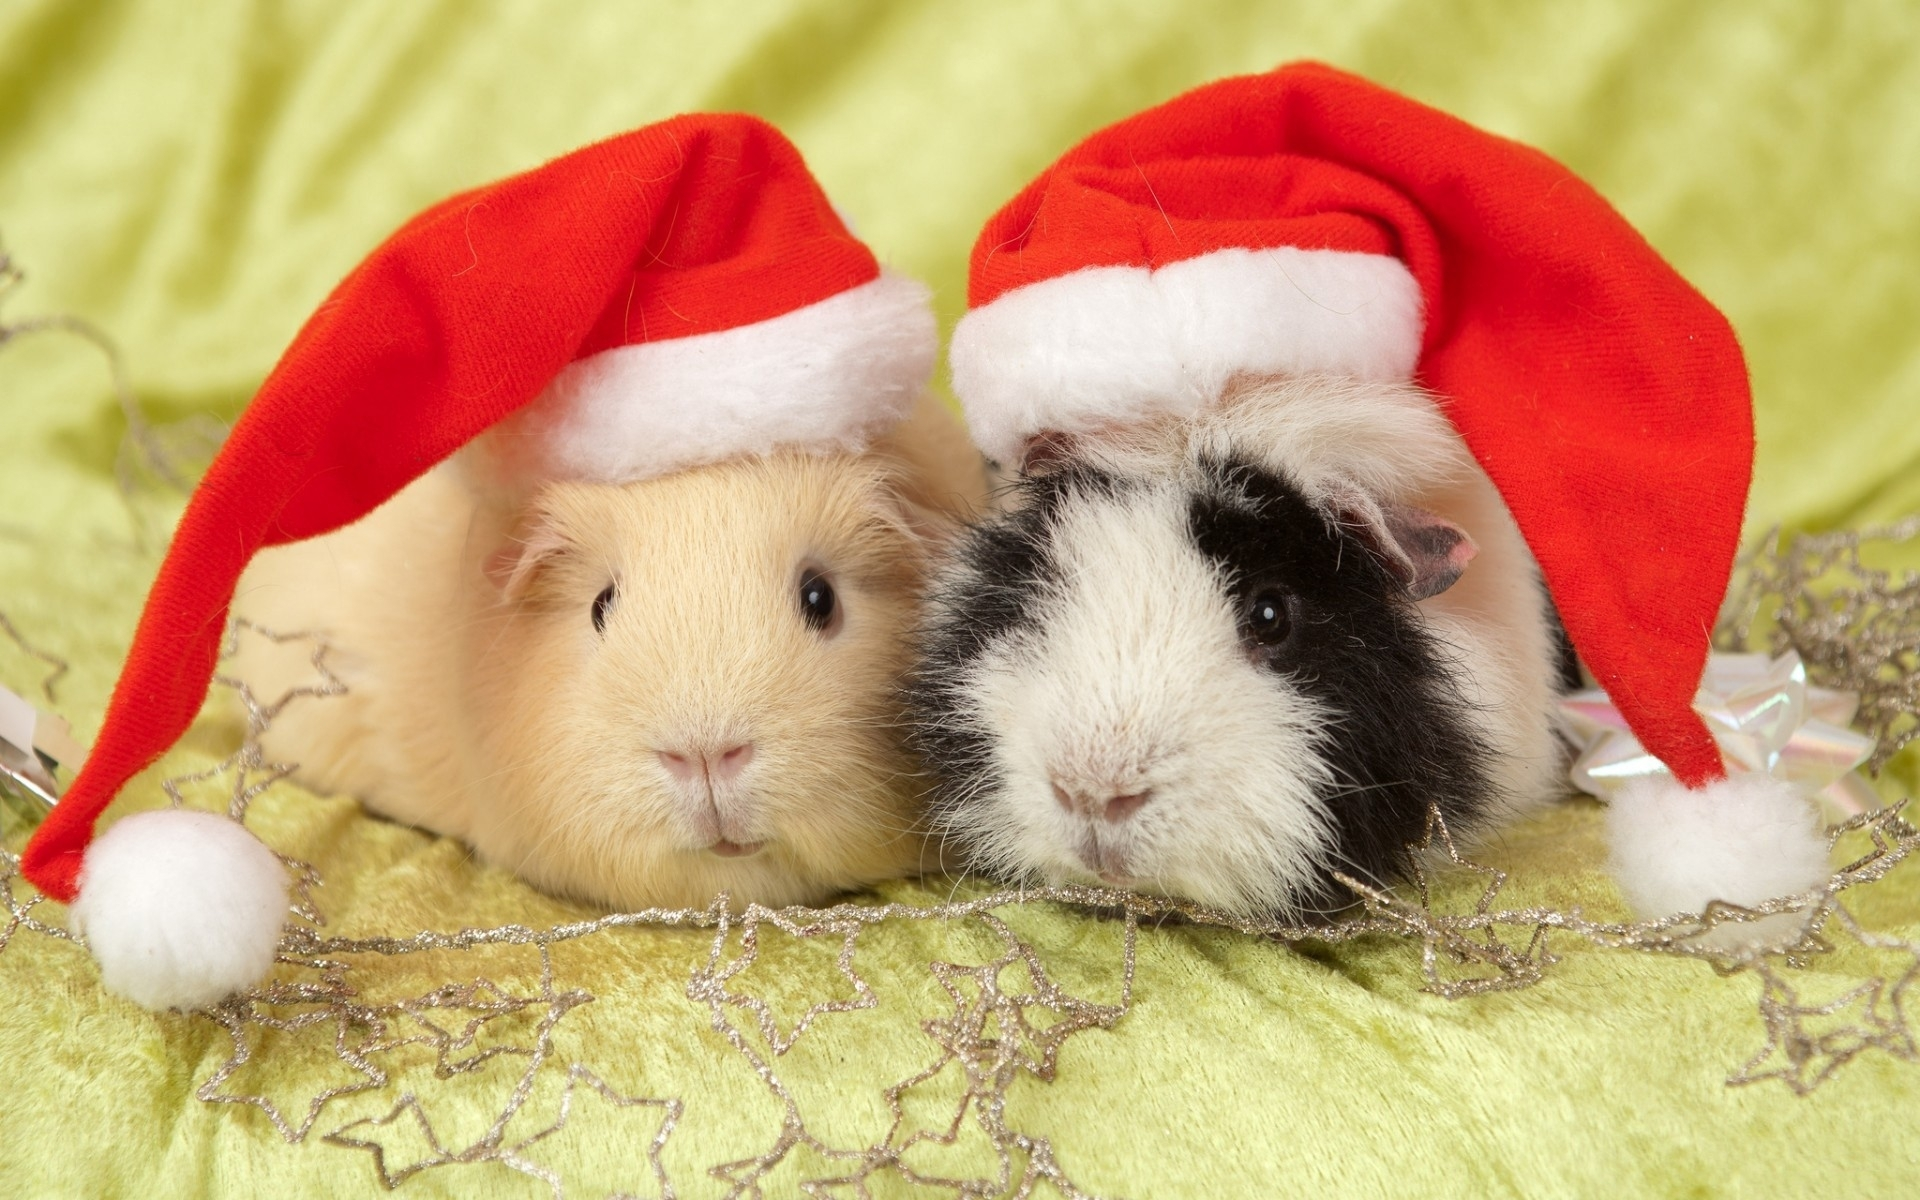 Cute Animal Pets Guinea Pigs wallpaper HD Wallpaper 1920x1200